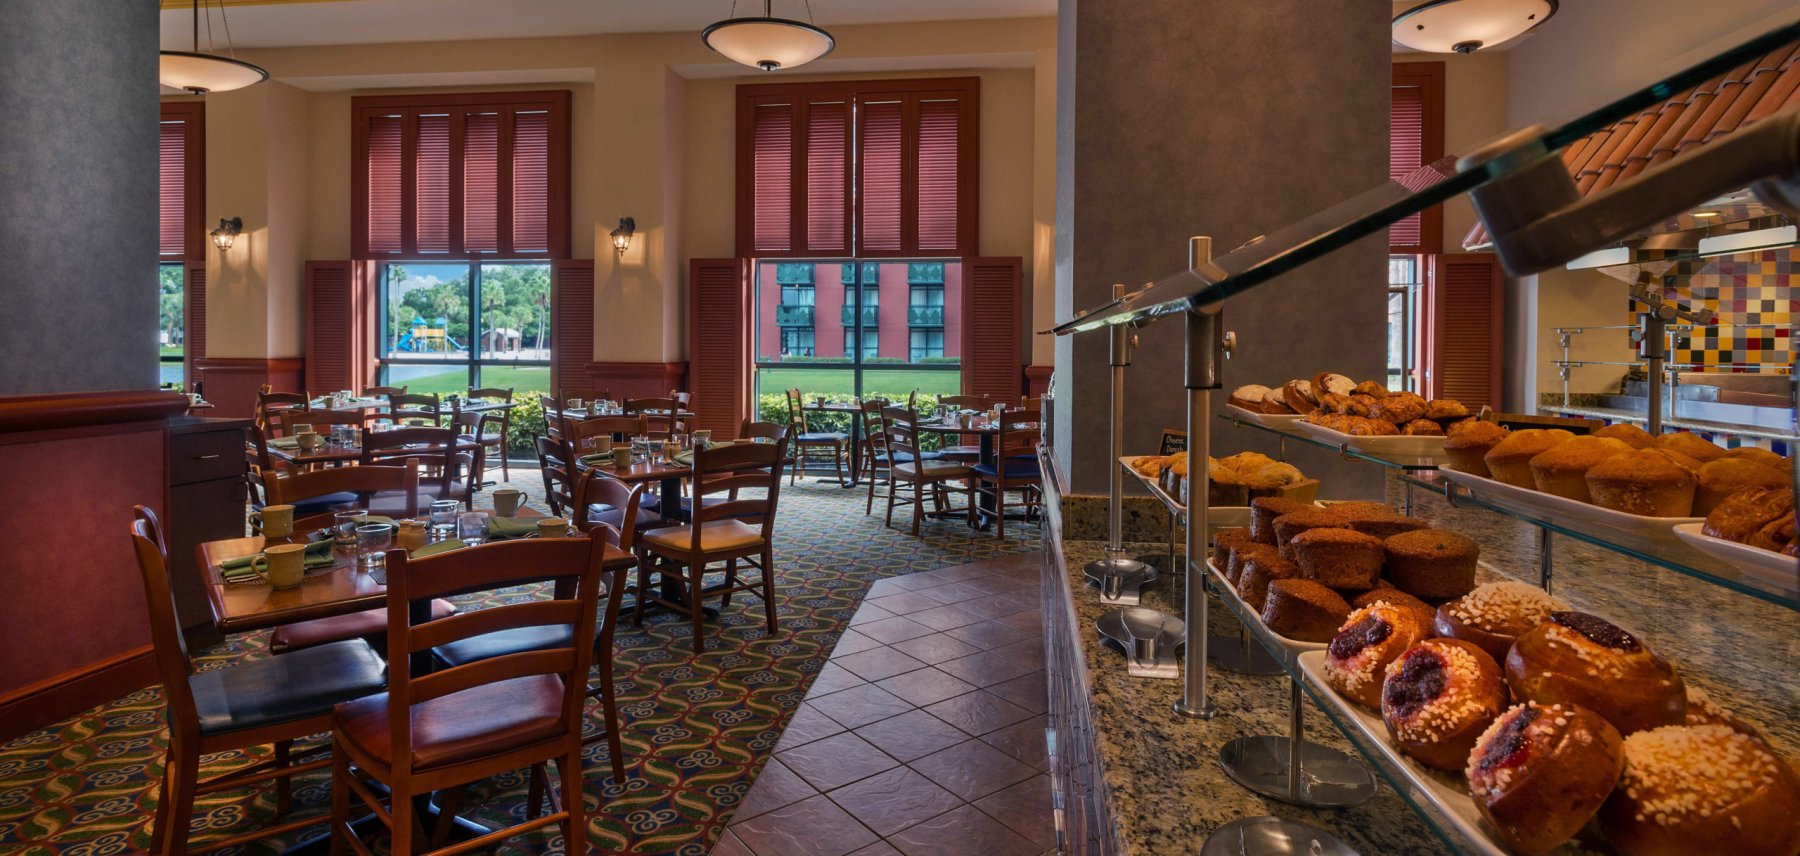 A look at the main seating area with a close up of the buffet featuring pastries at Fresh at the Walt Disney World Dolphin Resort